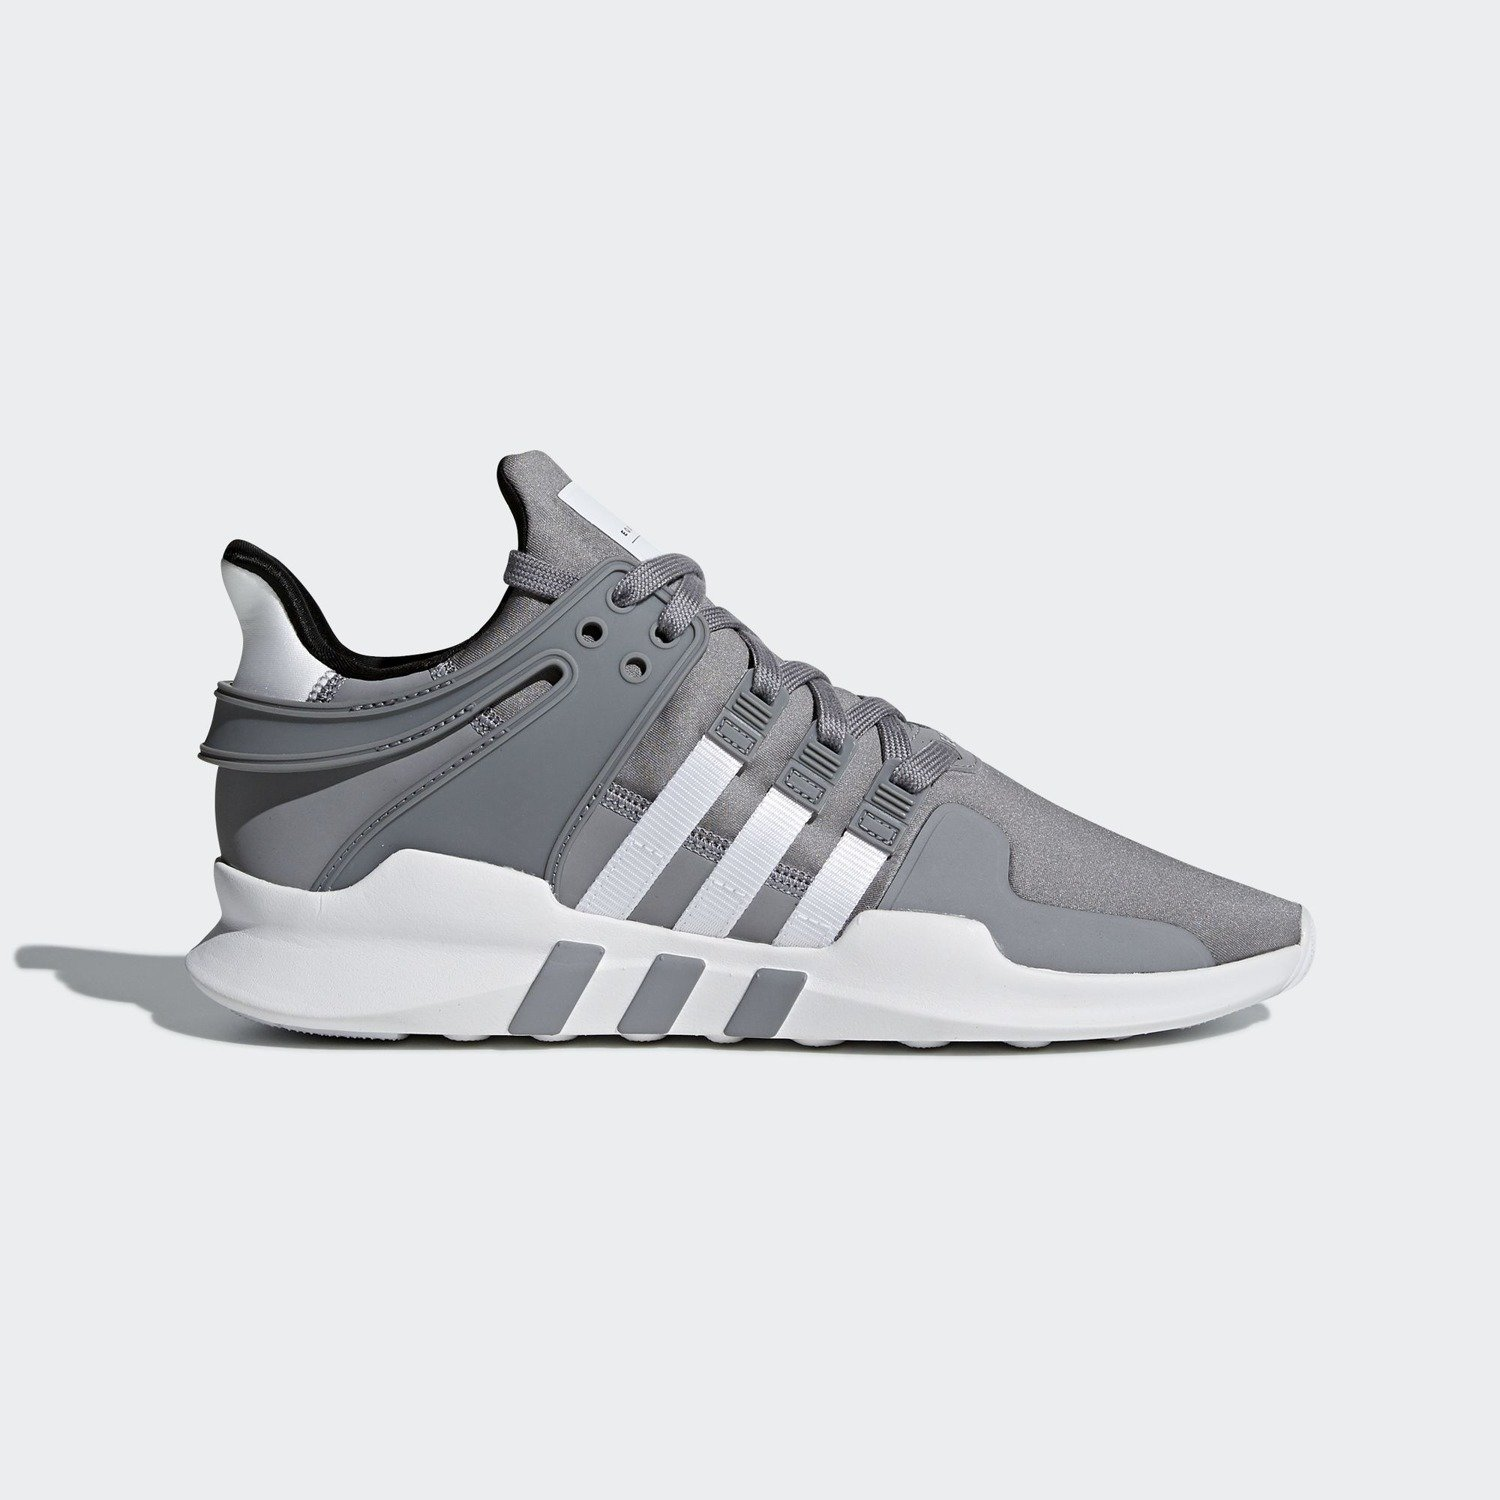 detailing d1a16 ad62e ... shop buty mskie adidas eqt support adv grey b37355 kliknij aby powikszy  187a8 e01ae